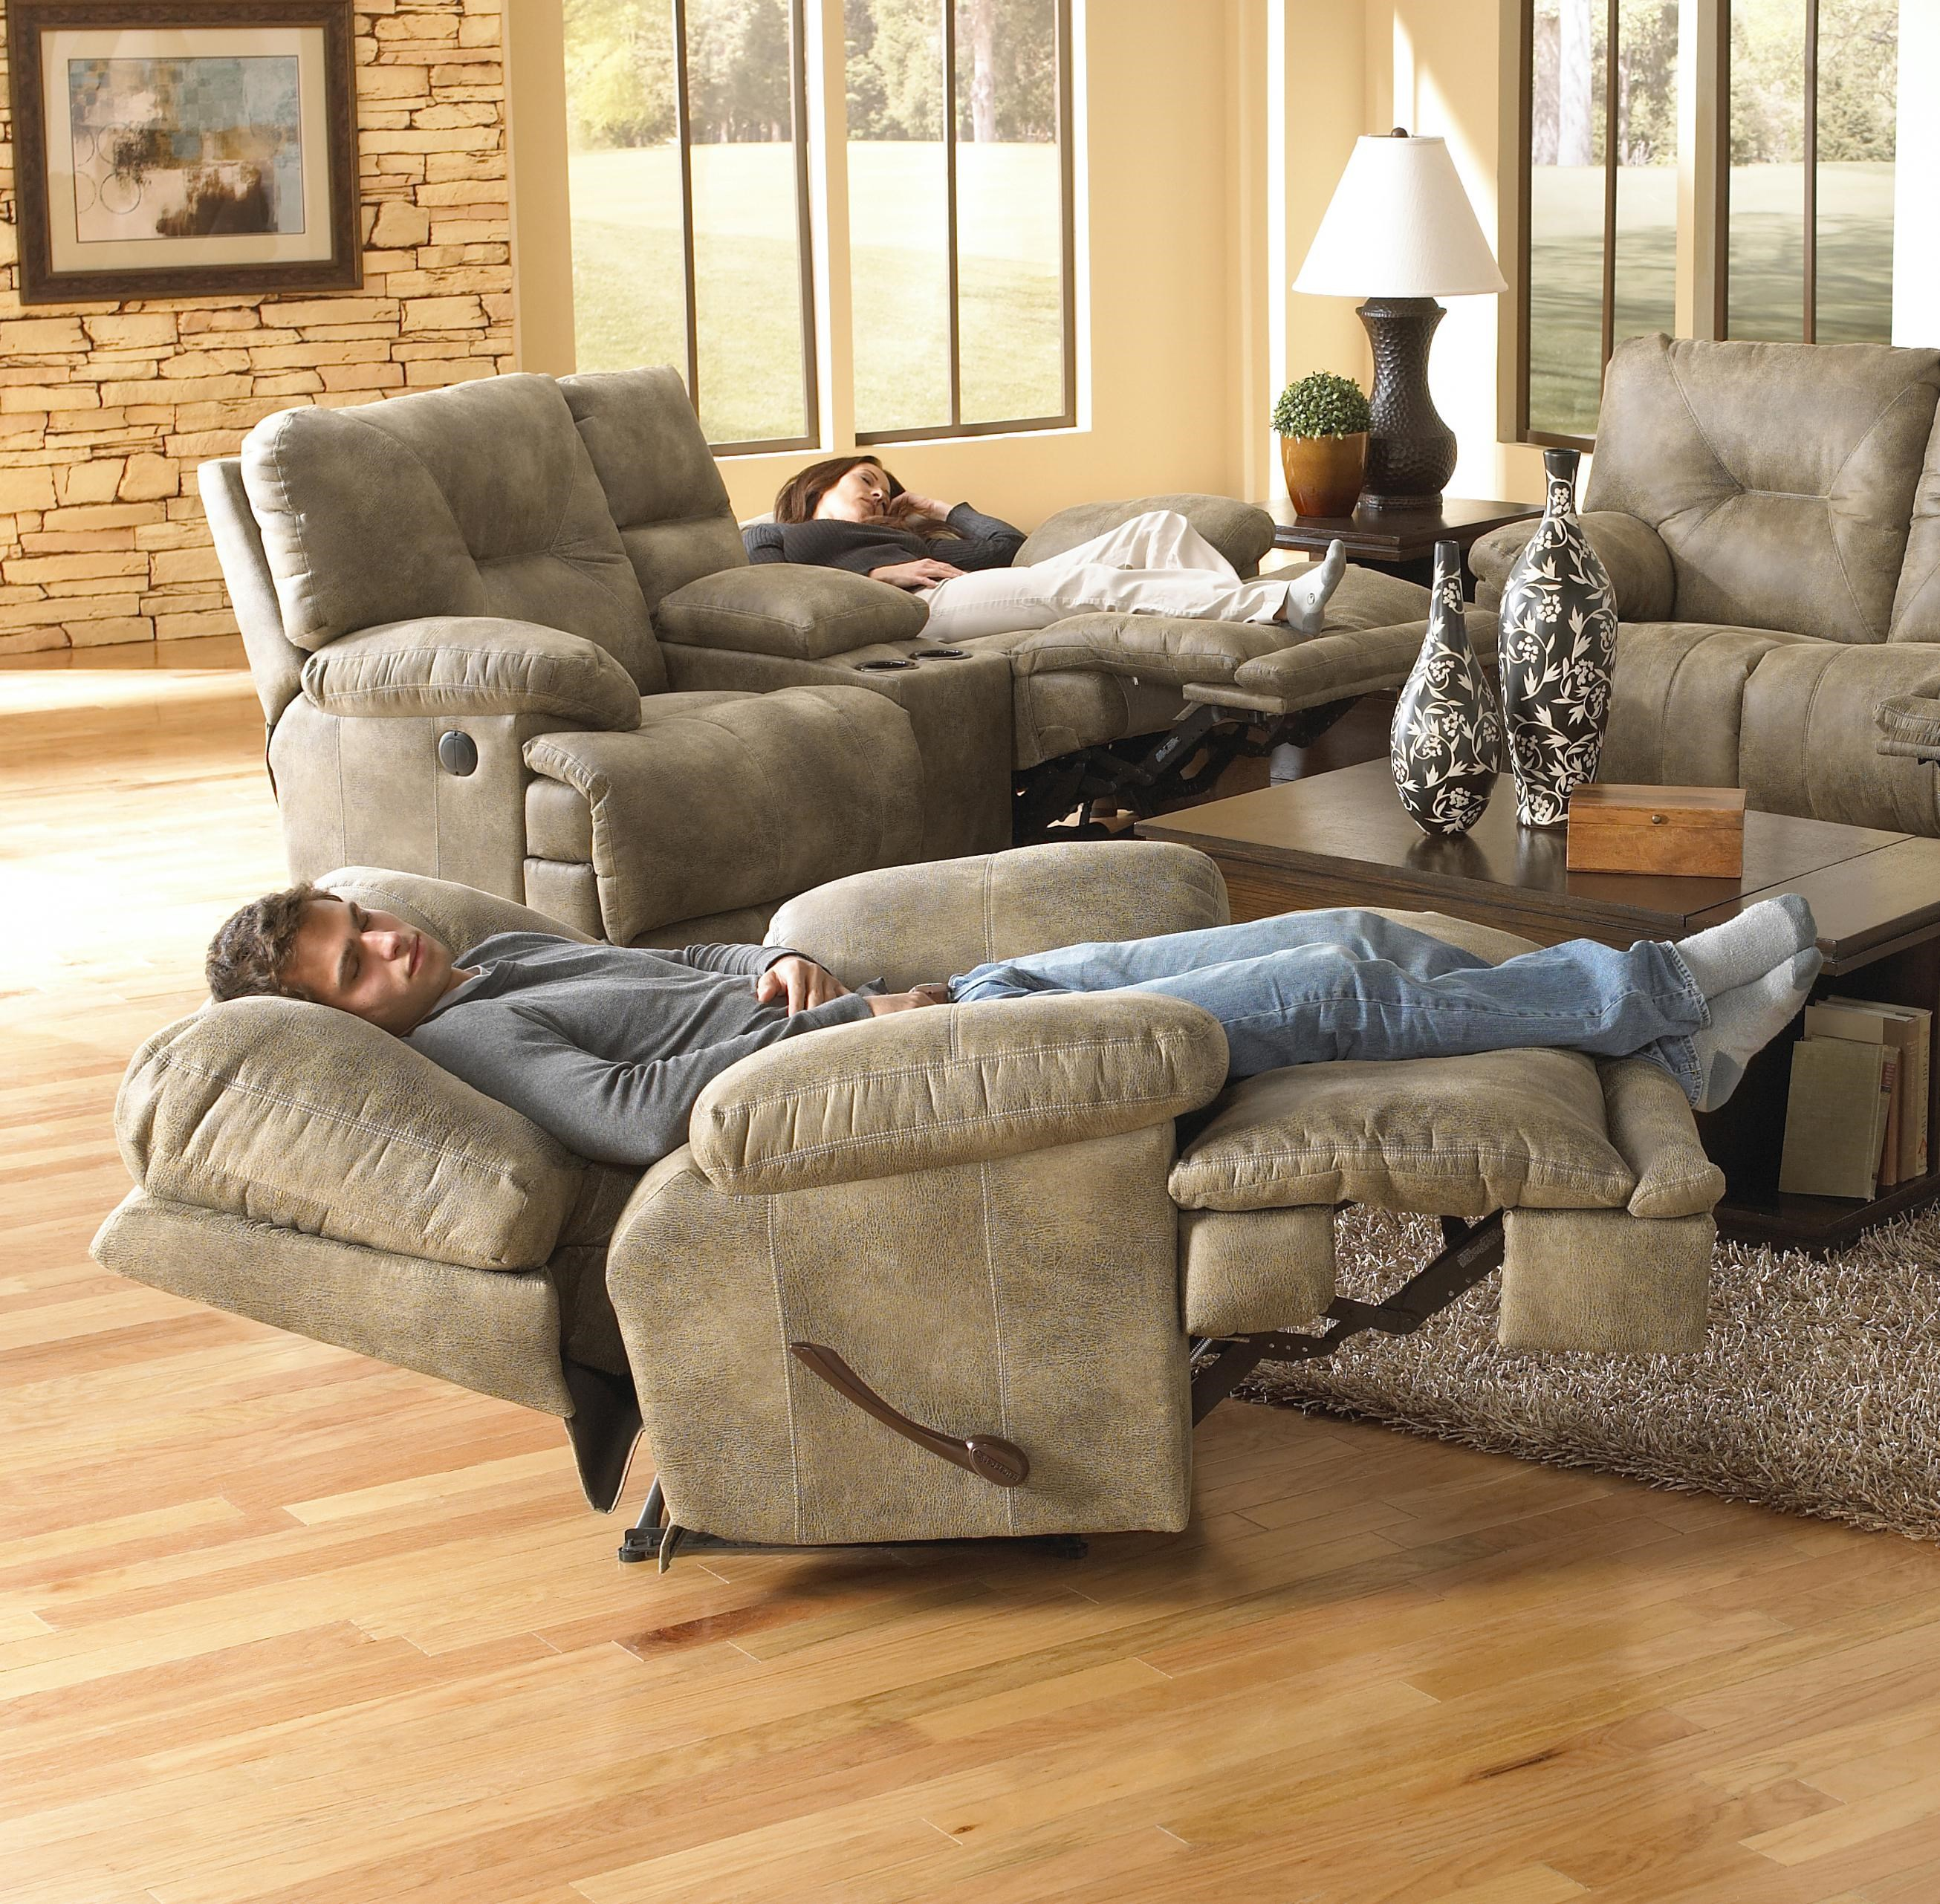 Voyager Single Seat  Lay Flat  Recliner by Catnapper  sc 1 st  Household Furniture & Catnapper Voyager Single Seat